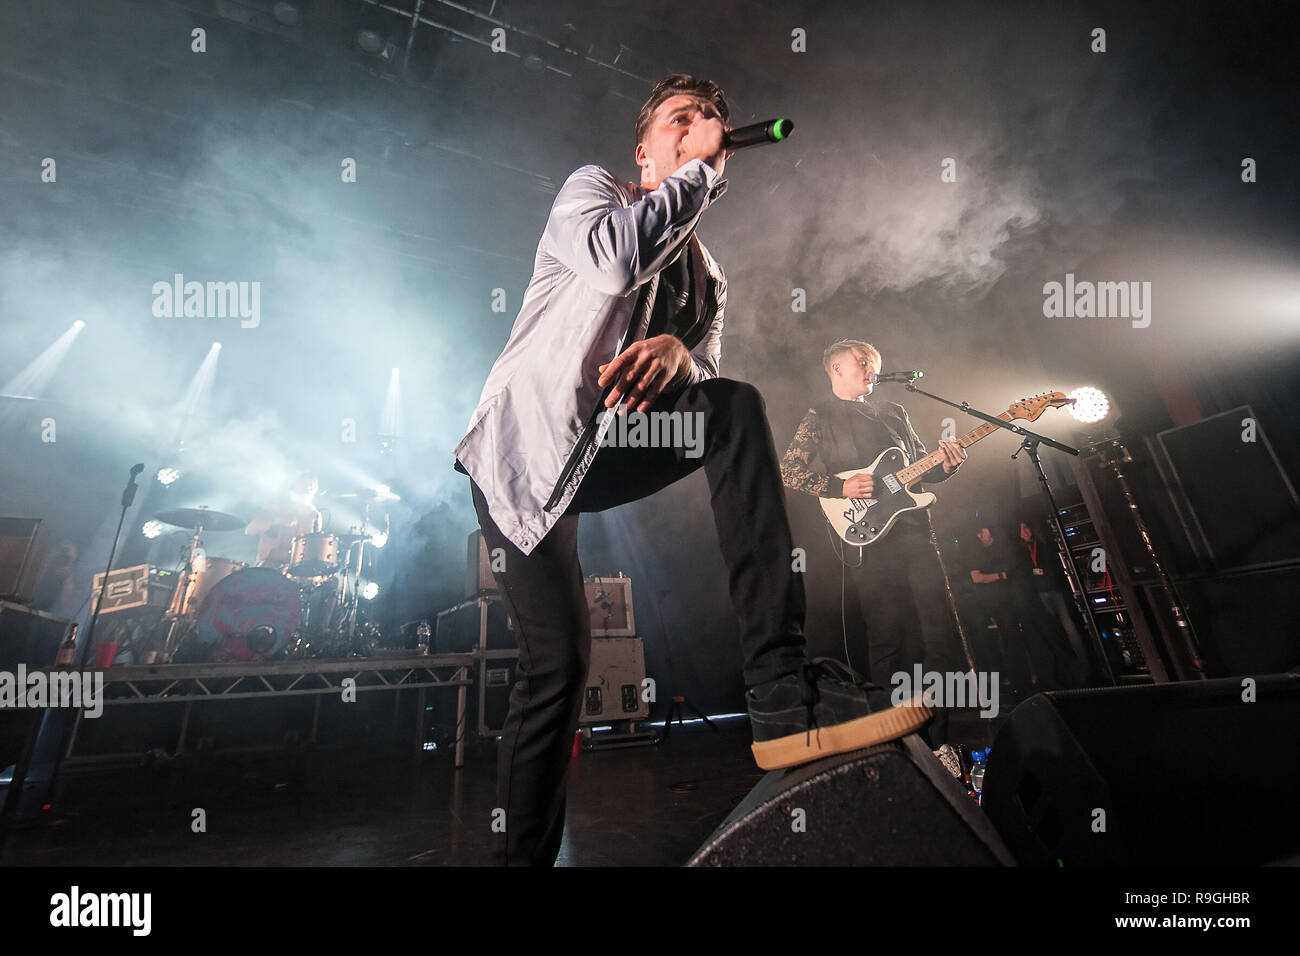 Motherwell, Scotland, UK. 23rd December, 2018. Motherwell band The LaFontaines tear apart the Civic Centre Concert Hall on their homecoming gig. Credit: Stuart Westwood/Alamy Live News Stock Photo